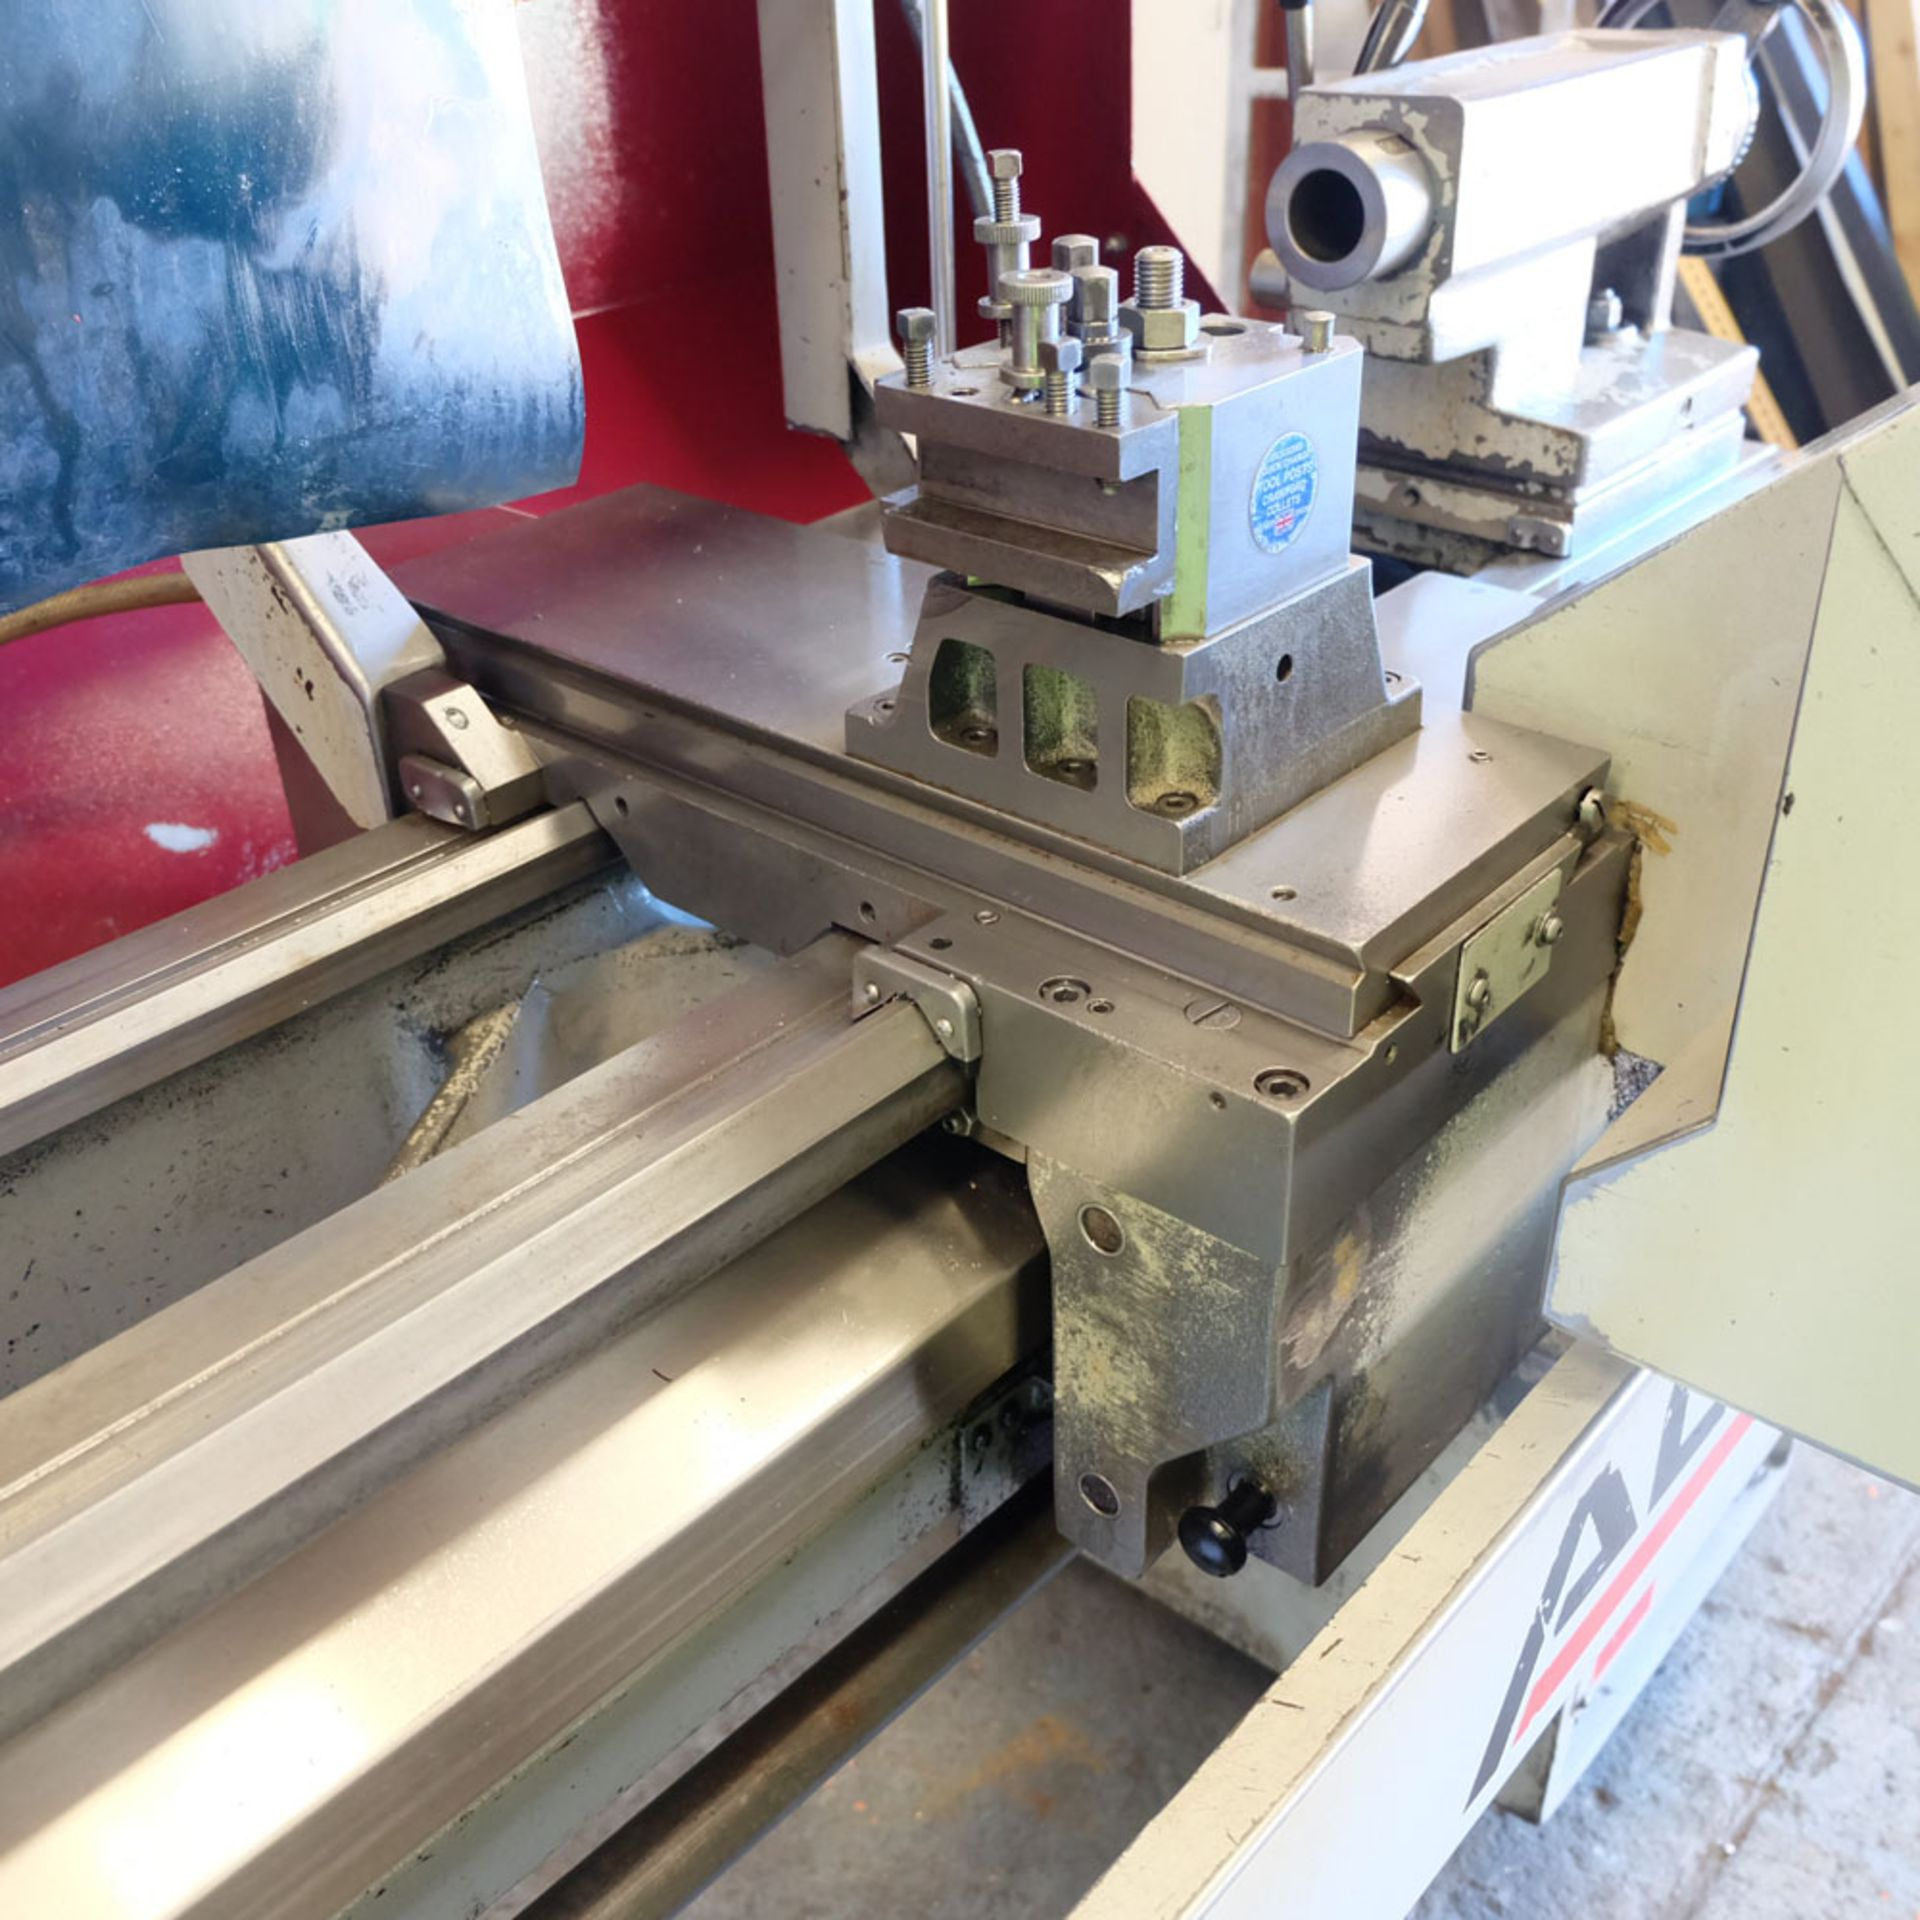 Harrison Alpha 400 CNC Lathe. Swing Over Bed: 400mm. Between Centres: 1250mm. Speeds: 15-2500rpm. - Image 8 of 8